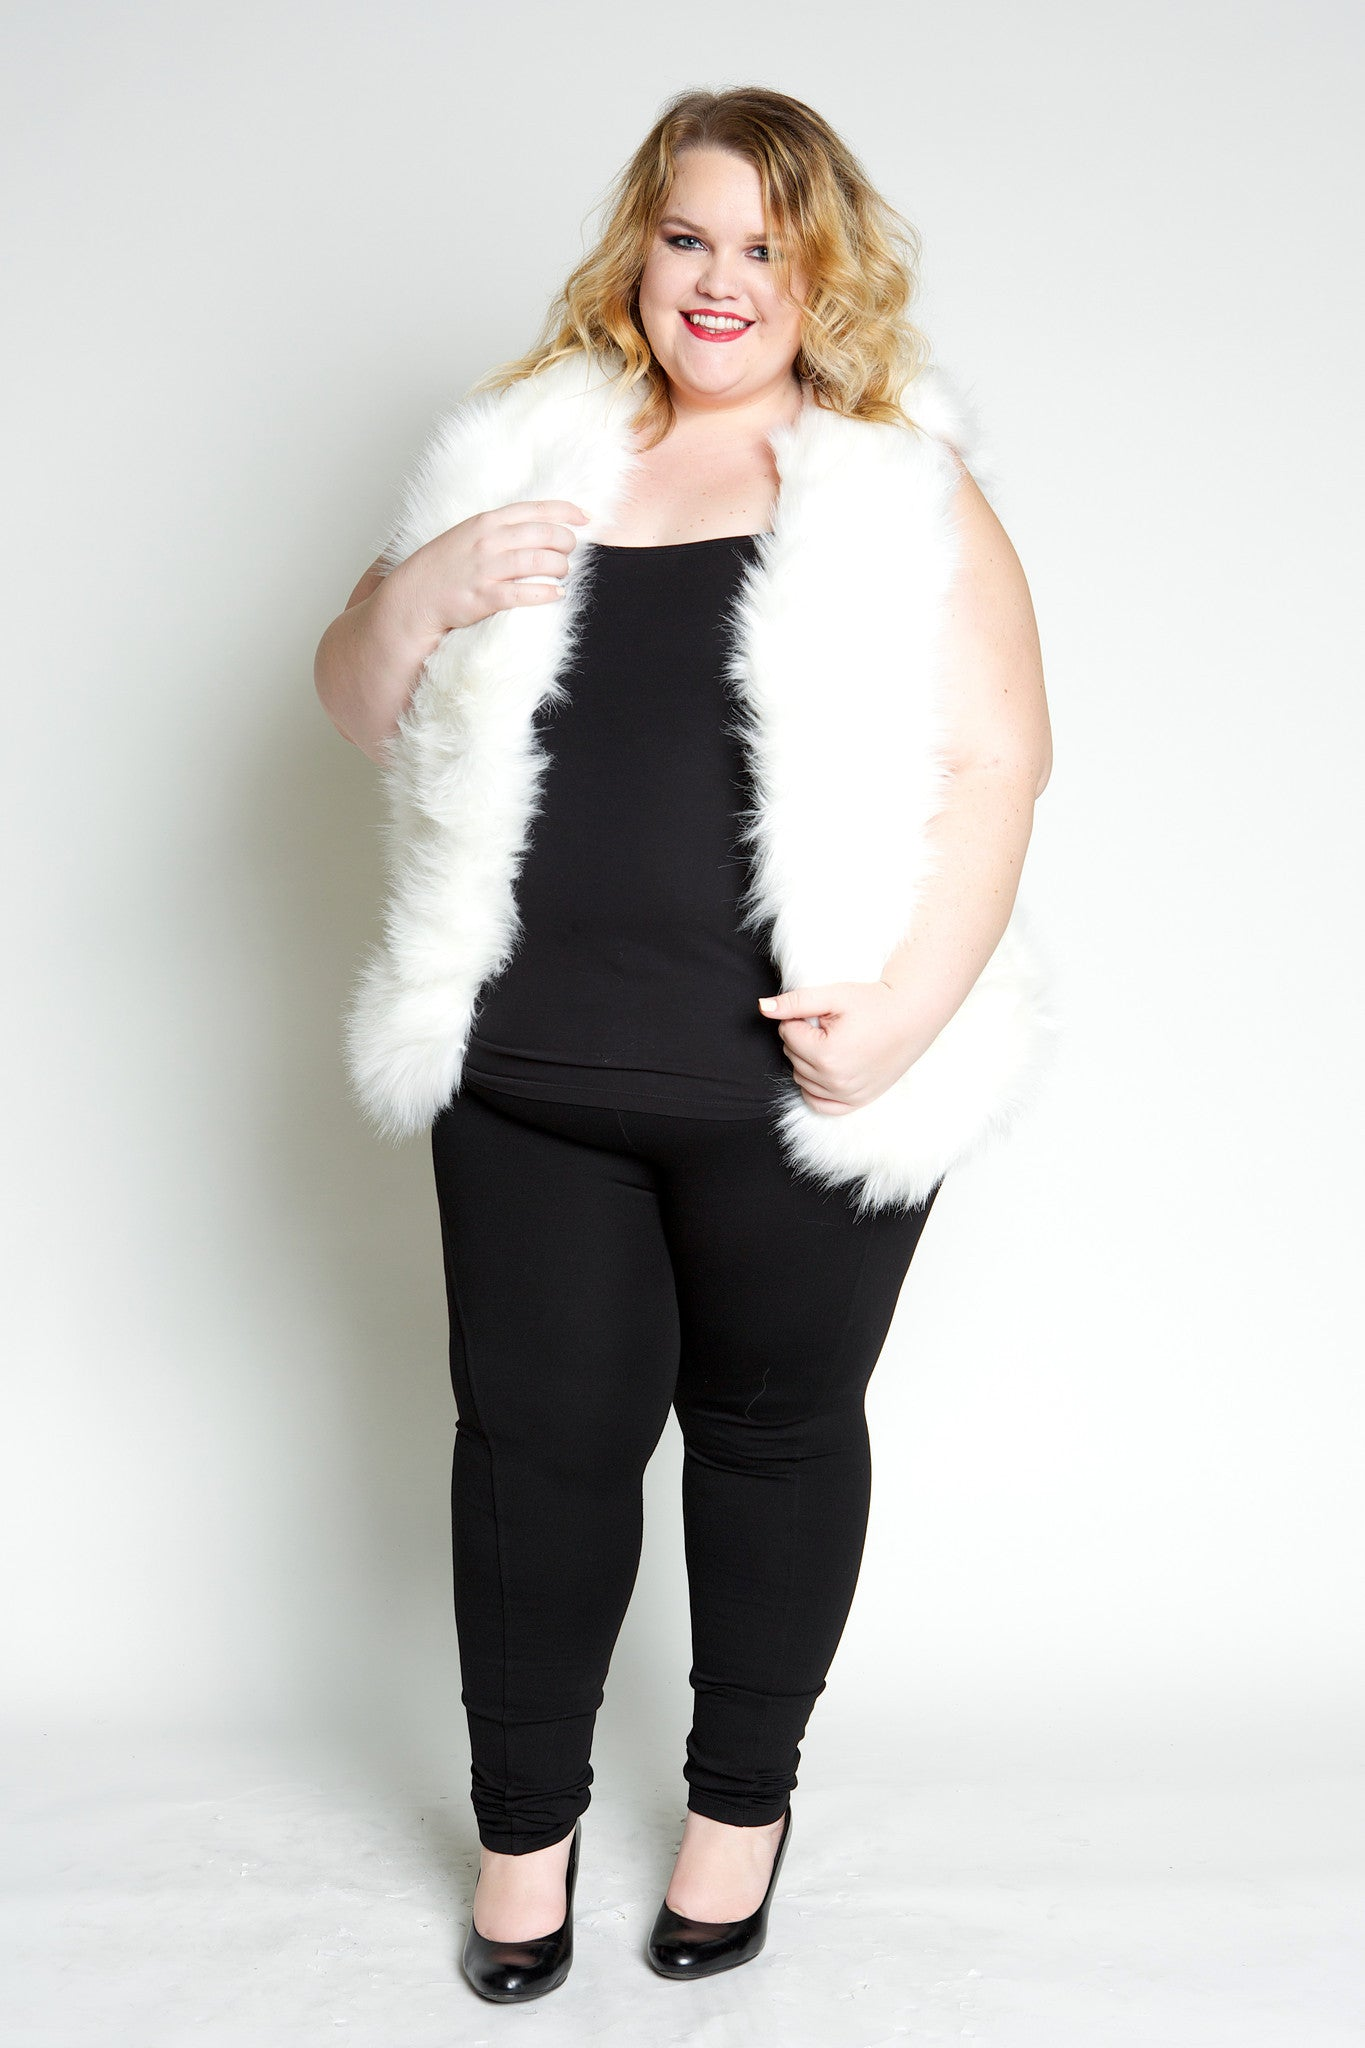 As seen on Ashley Nell Tipton, Project runway winner! Cuddle up in this super soft, luxe faux fur vest! The perfect accessory to take any outfit to the next level, you'll be the envy of all your friends! Be prepared for extra hugs ;) SELF:80%NYLON 20%POLYESTER LINING:100%POLYESTER MADE IN CHINA Font length Back length Arm hole Size:16/18 28